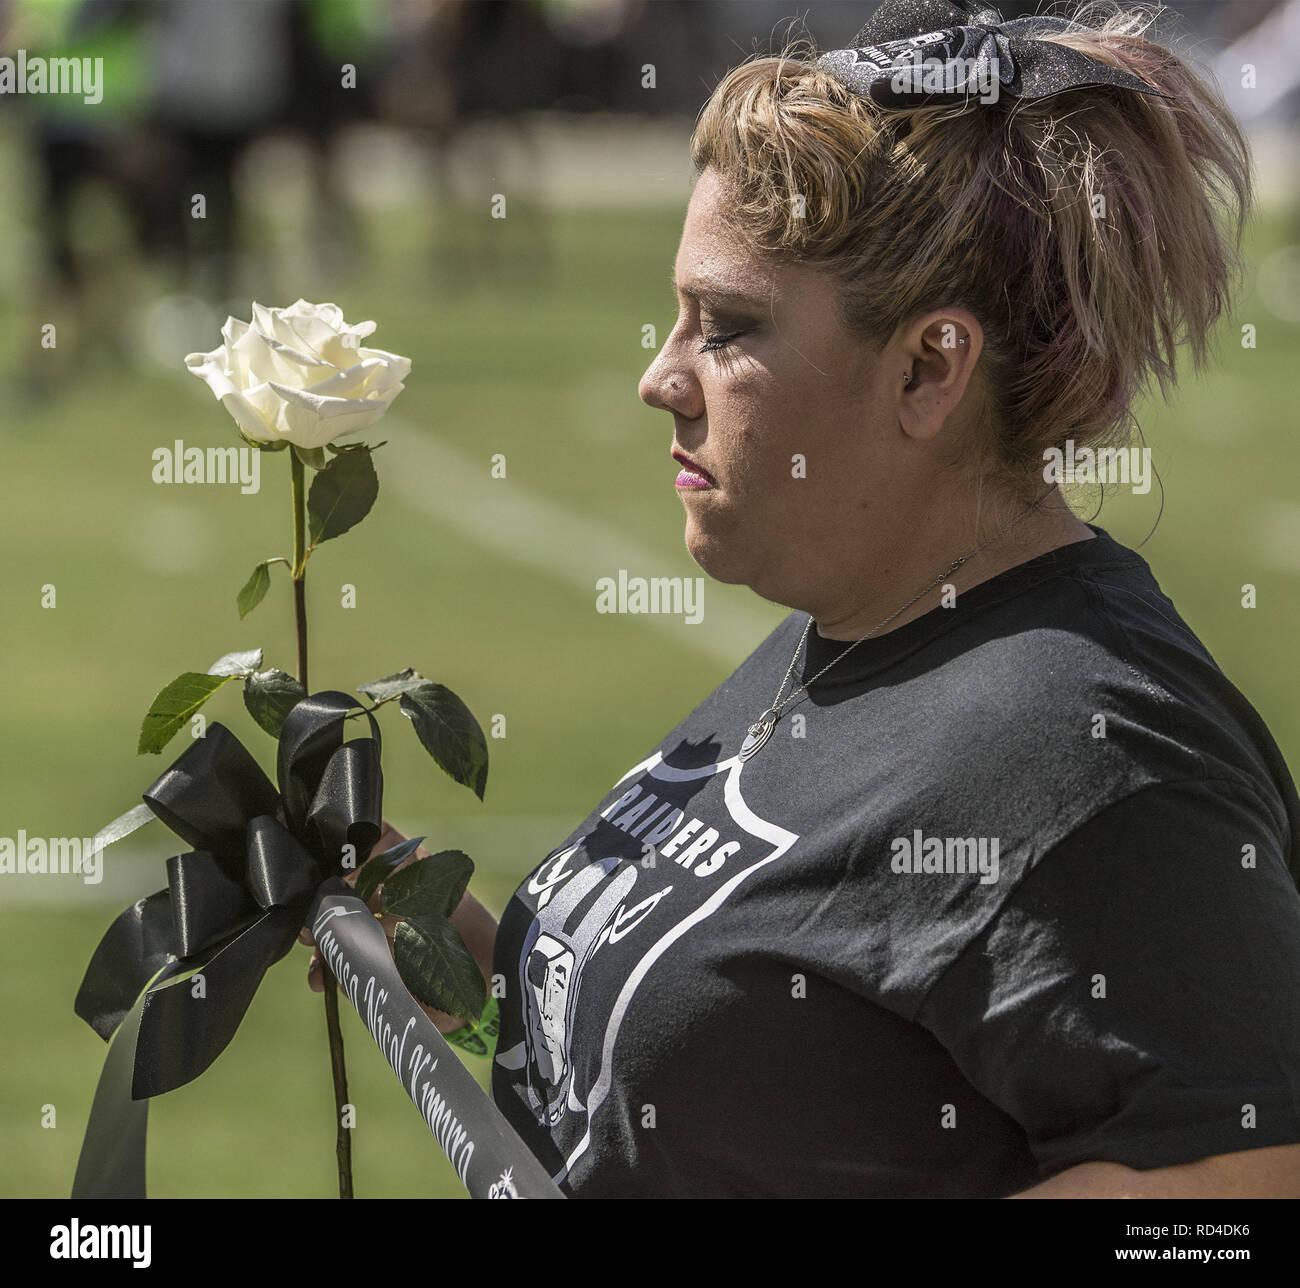 Oakland, California, USA. 8th Oct, 2017. Volunteer holds black ribbon with Las Vegas shooting victim Teresa Nicol Kimura on it during moment of silence on Sunday, October 8, 2017, at Oakland-Alameda County Coliseum in Oakland, California. The Ravens defeated the Raiders 30-17. Credit: Al Golub/ZUMA Wire/Alamy Live News - Stock Image